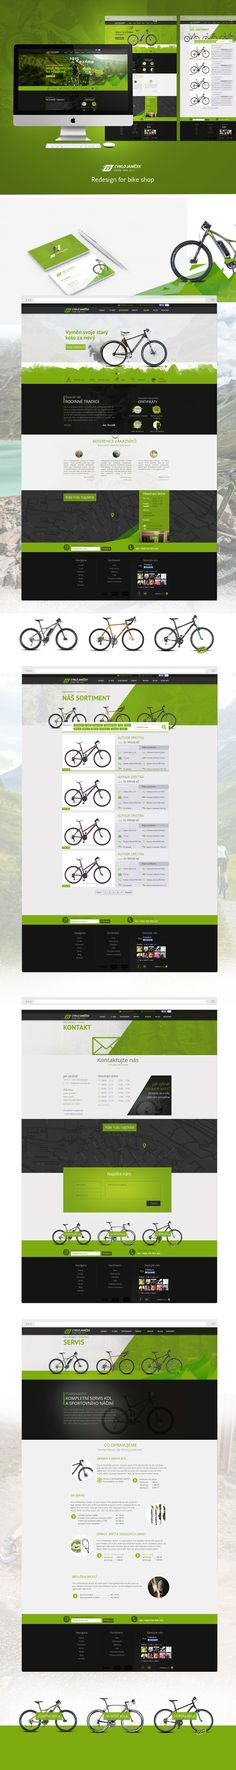 cycle, bike, bike website, bike shop, sport, sport web, Web Design, Sport Sport, Bike, Website, Shopping, Bicycle, Design Web, Bicycles, Website Designs